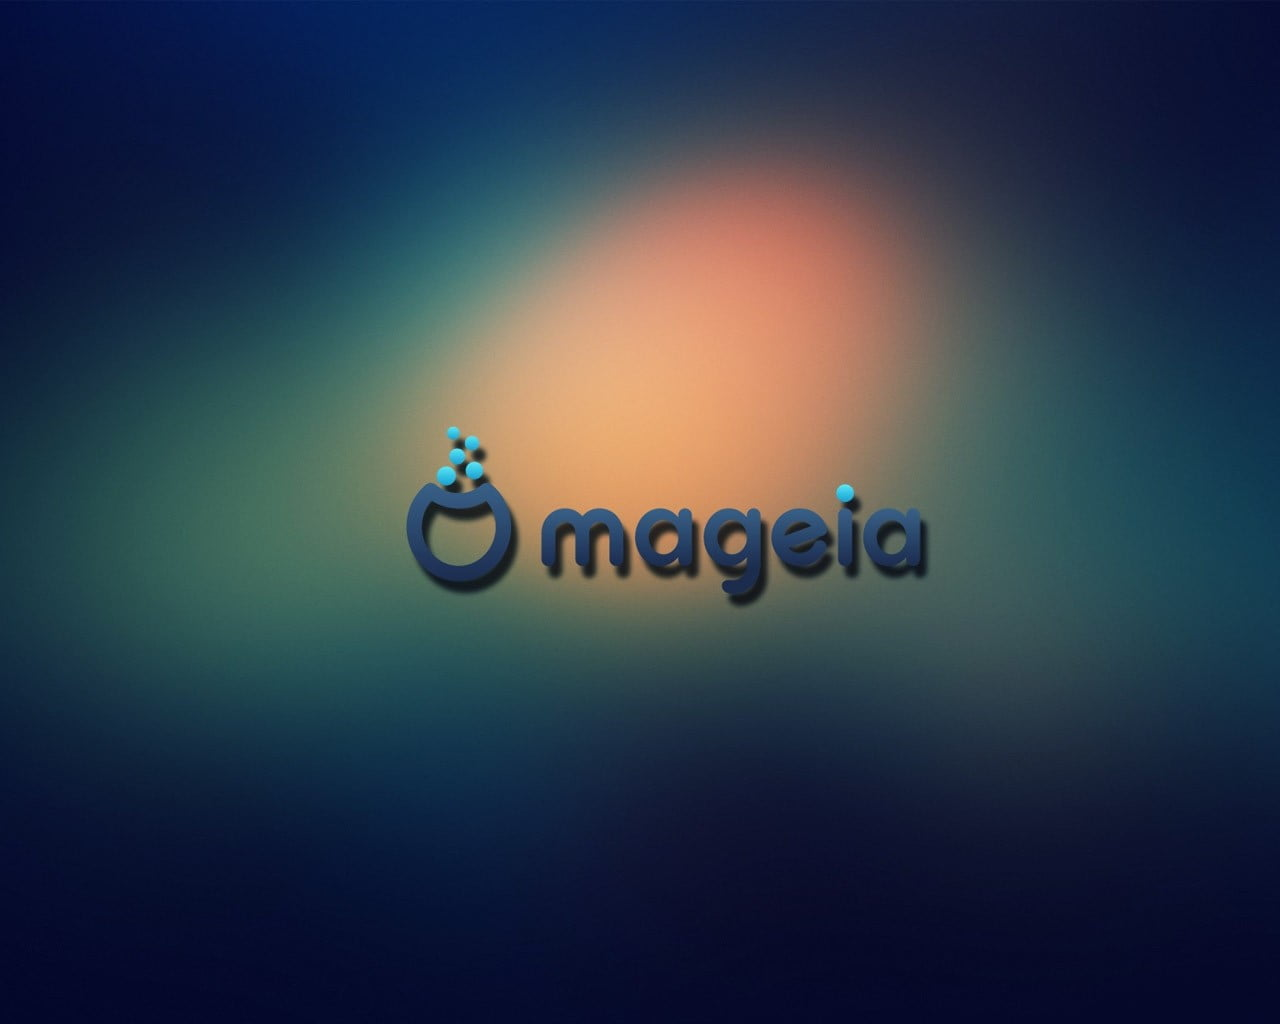 Black and white LED light Linux Mageia HD wallpaper Wallpaper 1280x1024